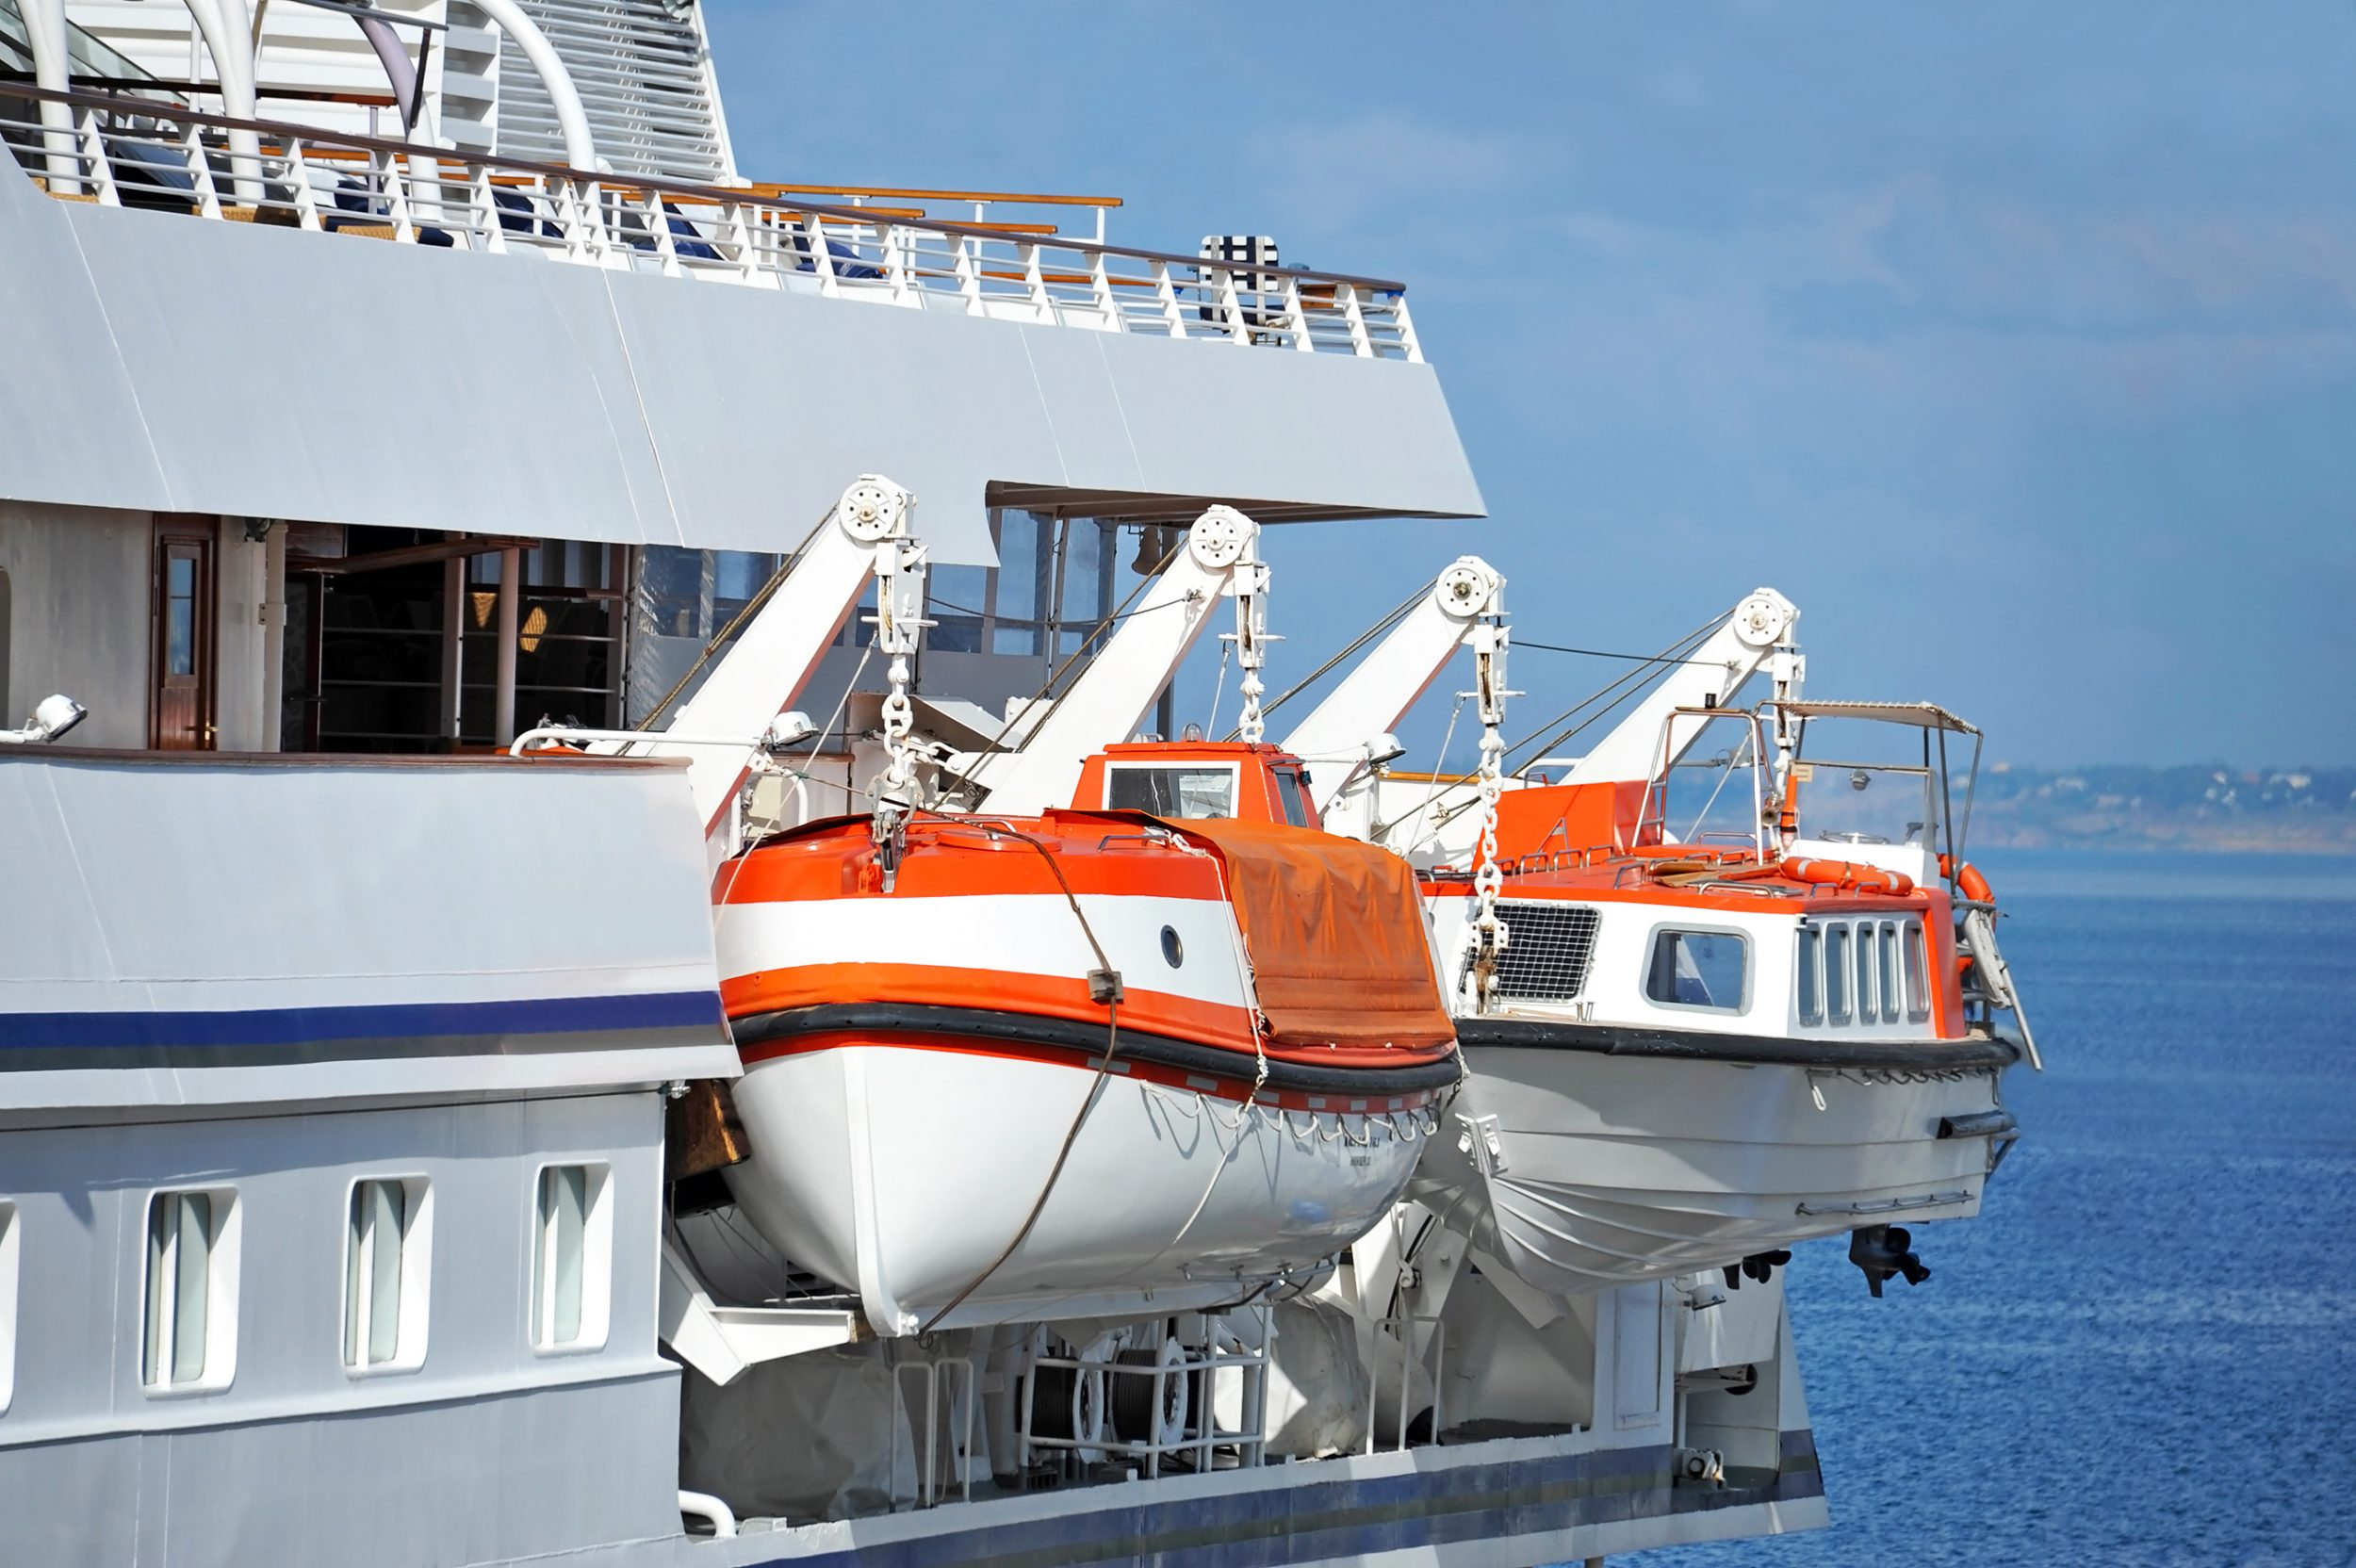 Lifeboat Drill Accidents | Maritime Injury Center